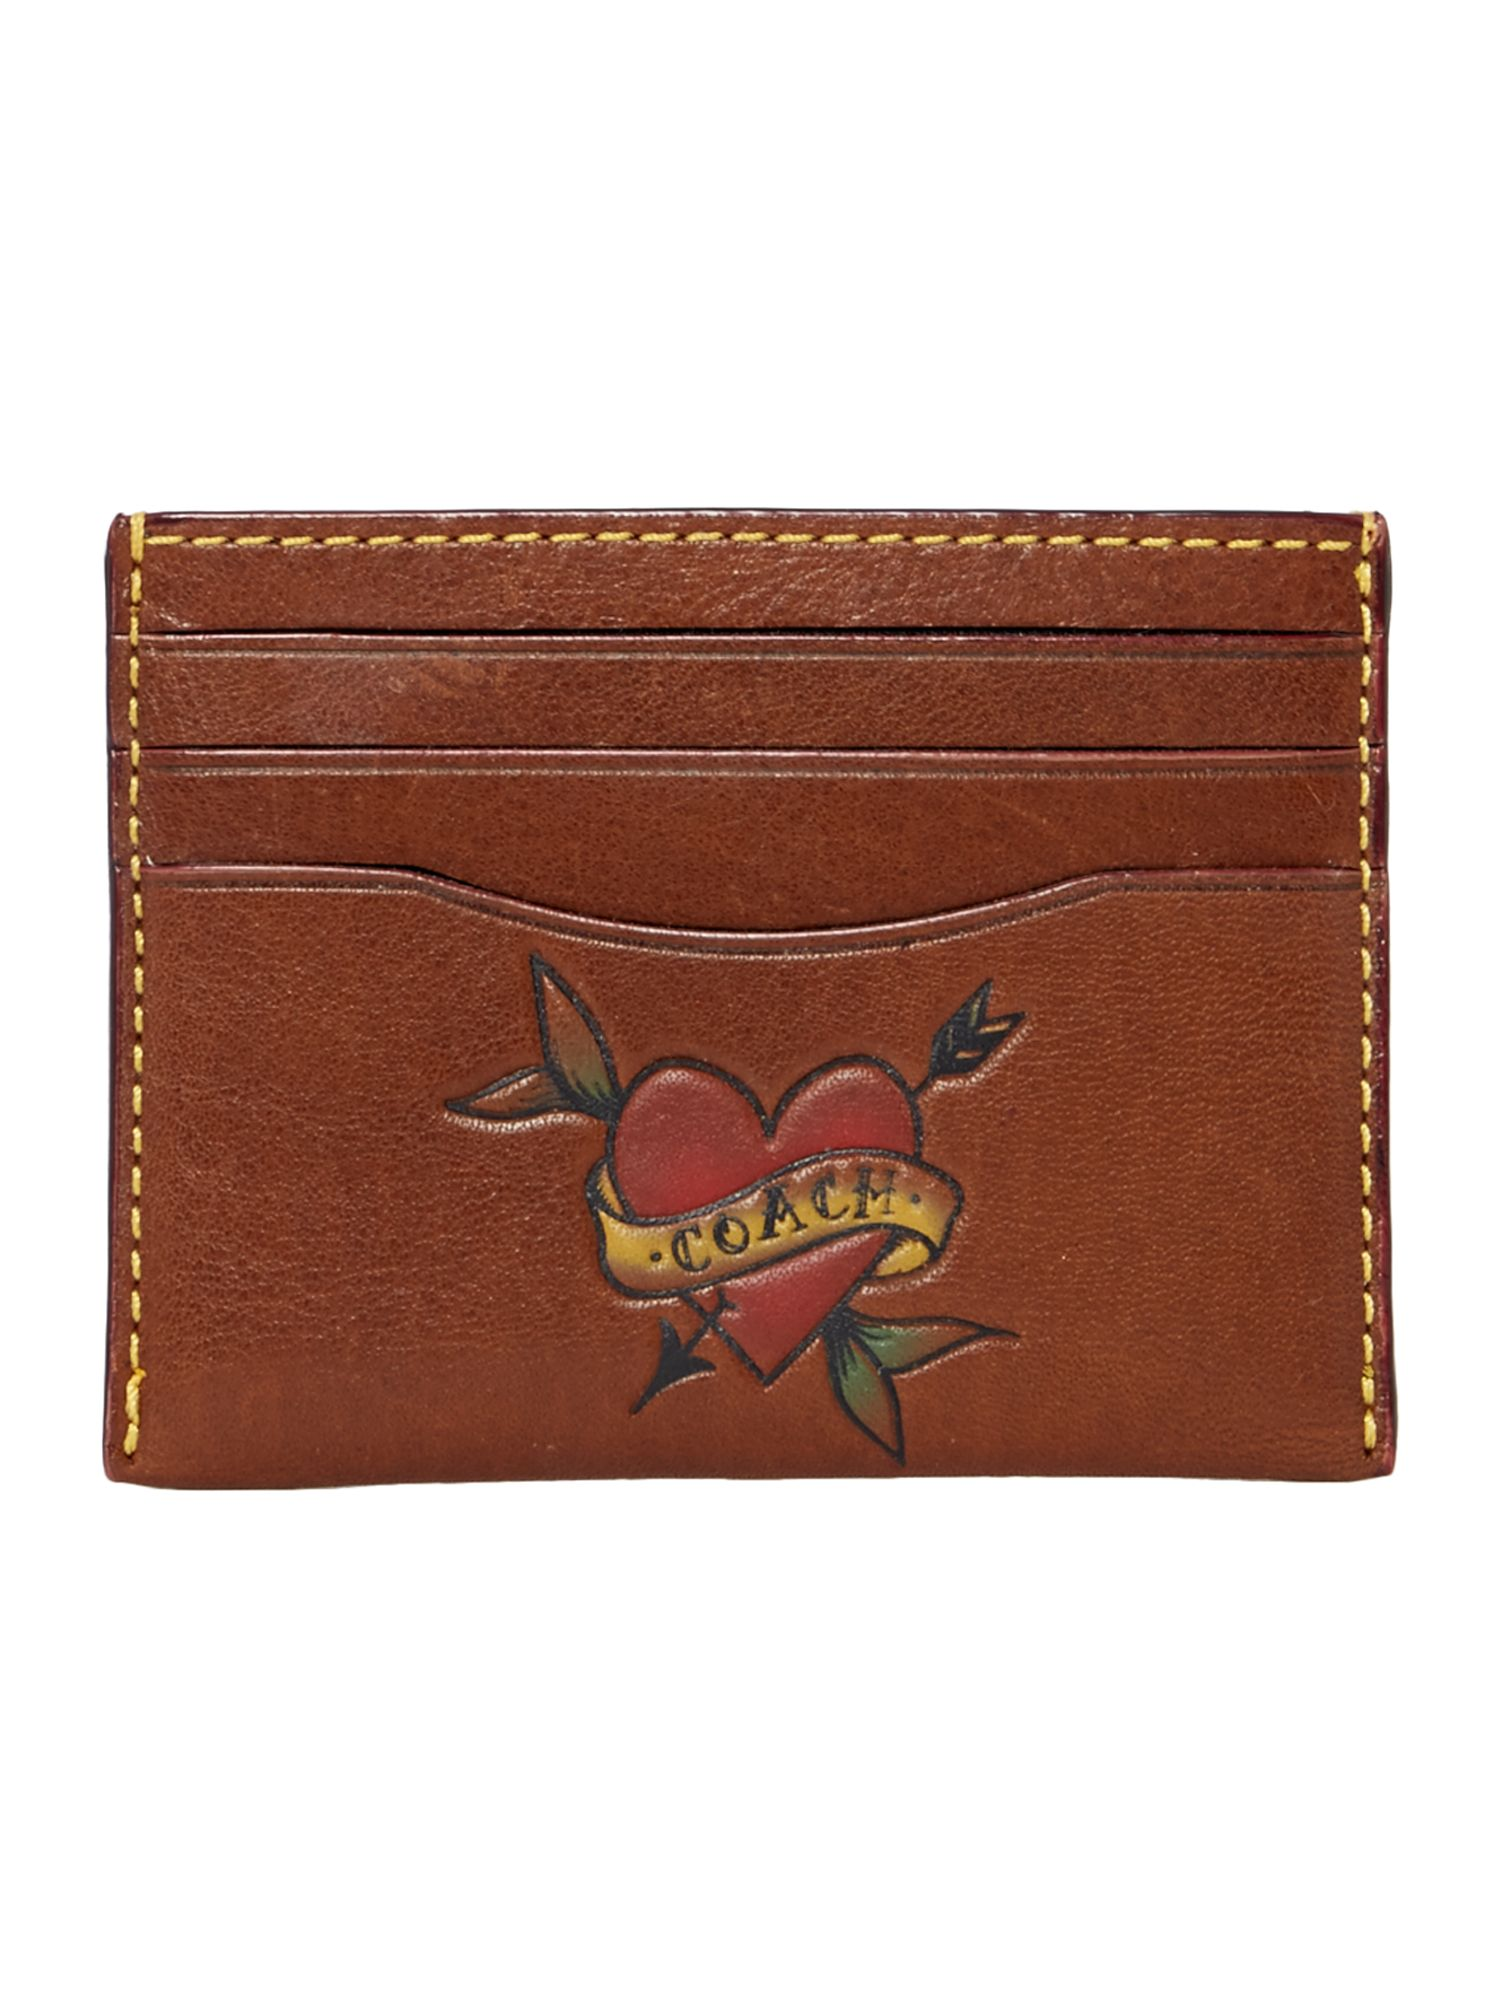 Coach Card Case In Tattoo Sport Calf, Brown